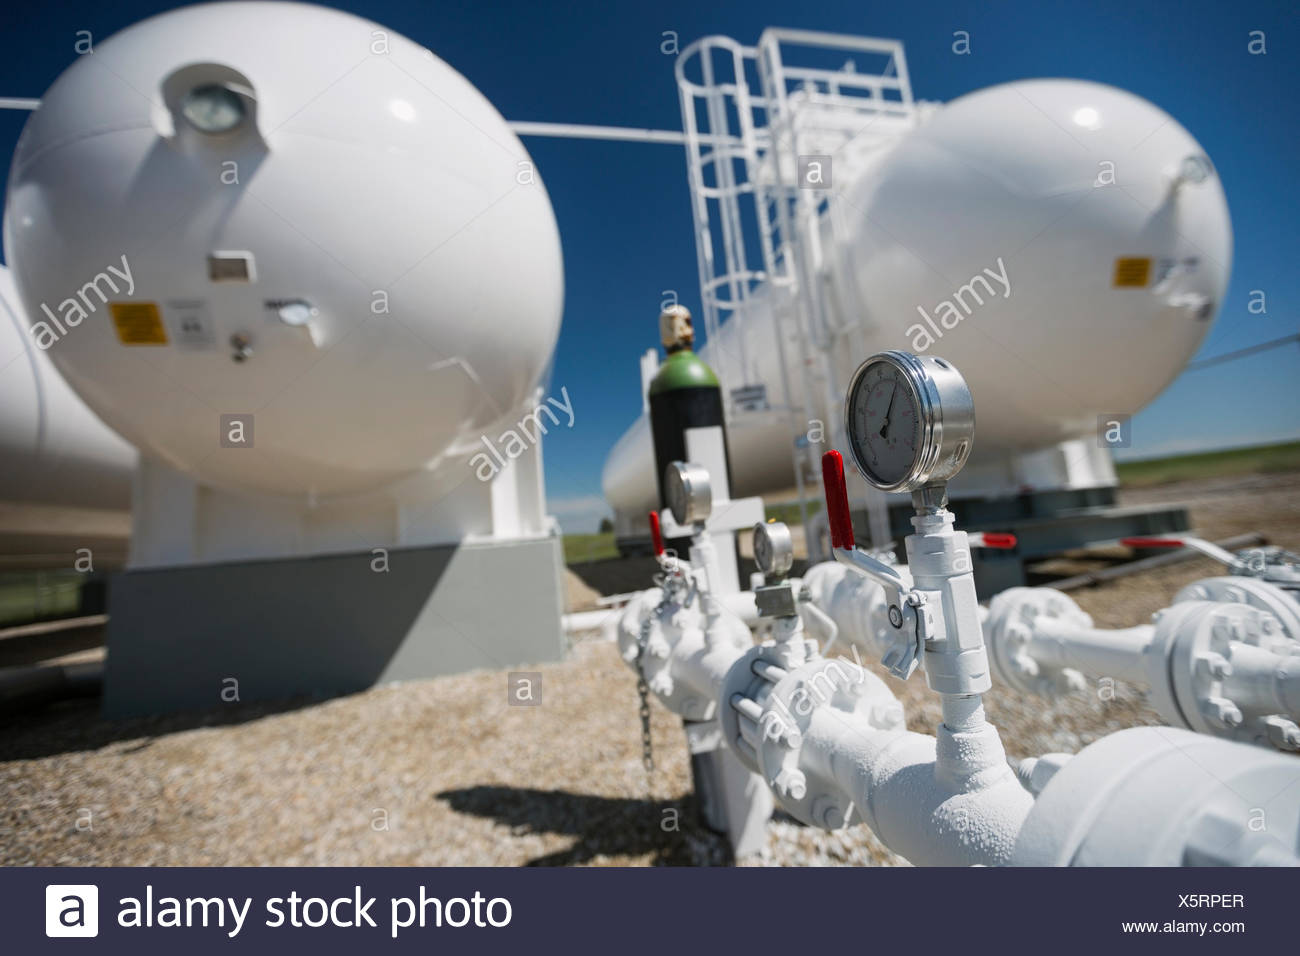 Gauge below natural gas containers - Stock Image